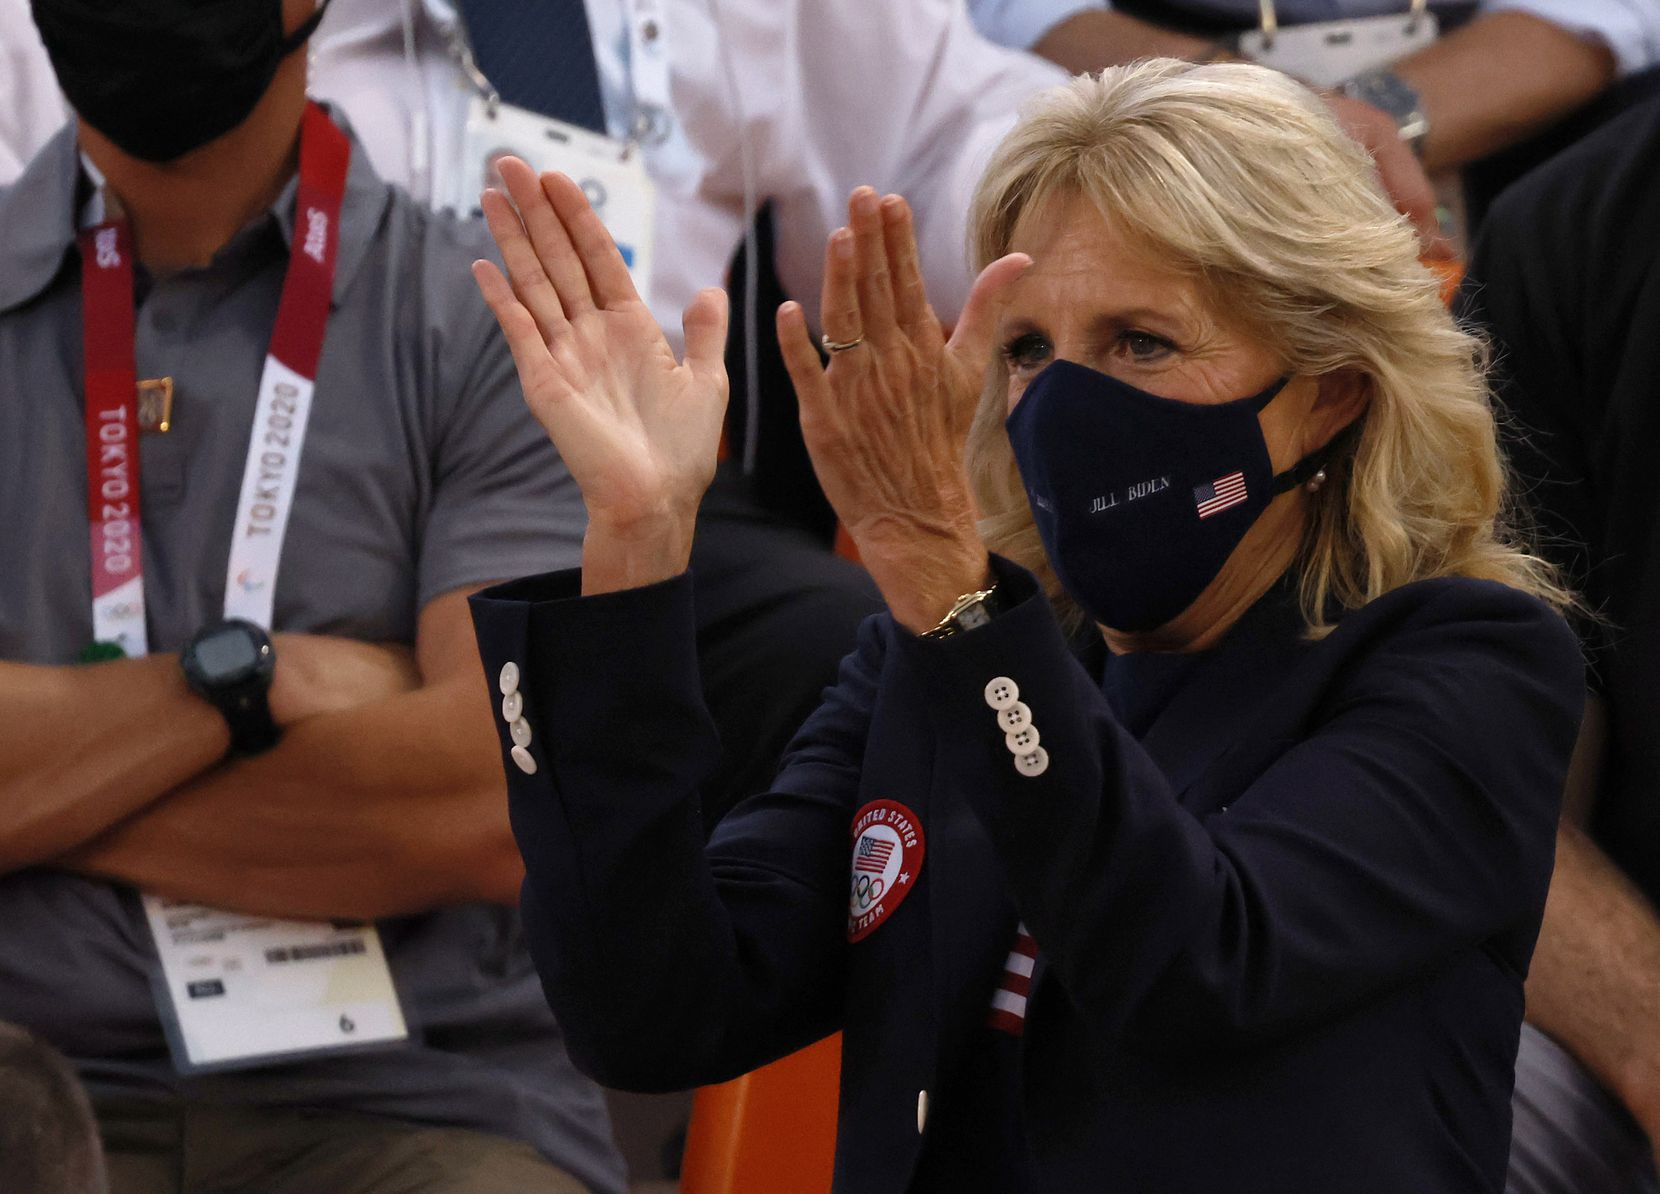 First lady Jill Biden celebrates a victory for USA over France 17-10 in a 3x3 women's basketball game during the postponed 2020 Tokyo Olympics at Aomi Urban Sports Park on Saturday, July 24, 2021, in Tokyo, Japan. (Vernon Bryant/The Dallas Morning News)